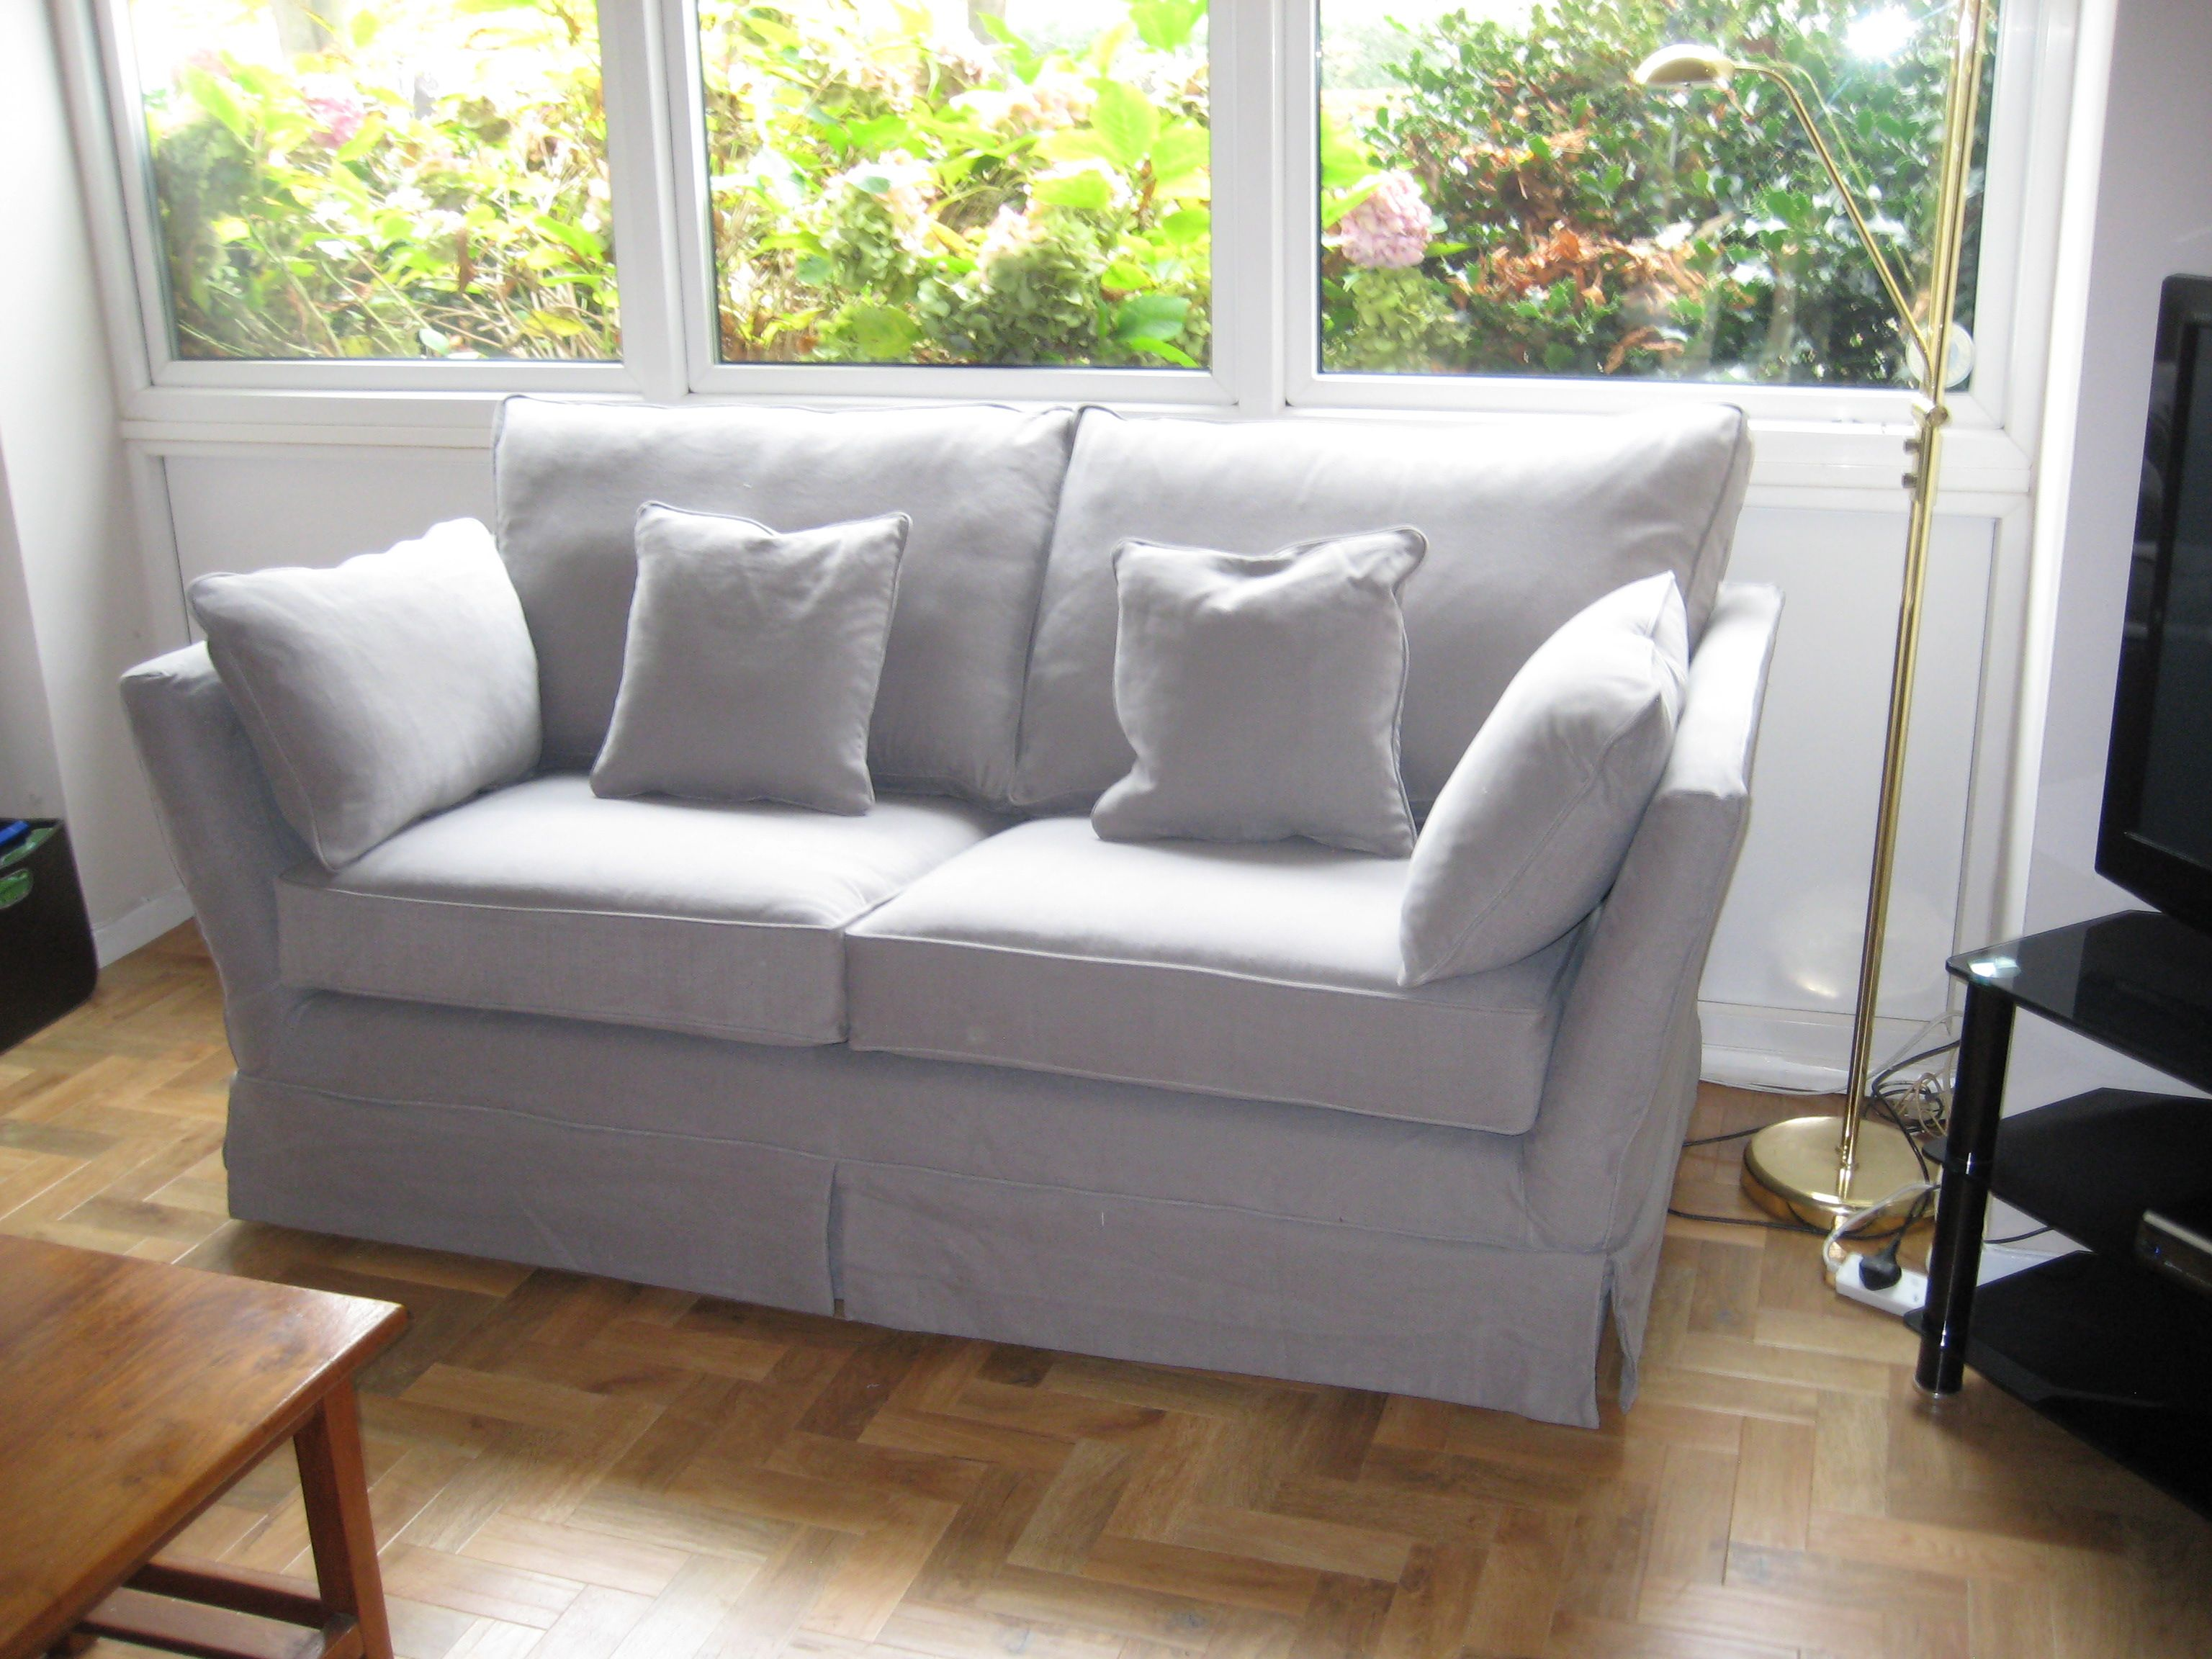 Sofasandstuff Reviews Cantoni Sofa Bed British Makers Review Home Co